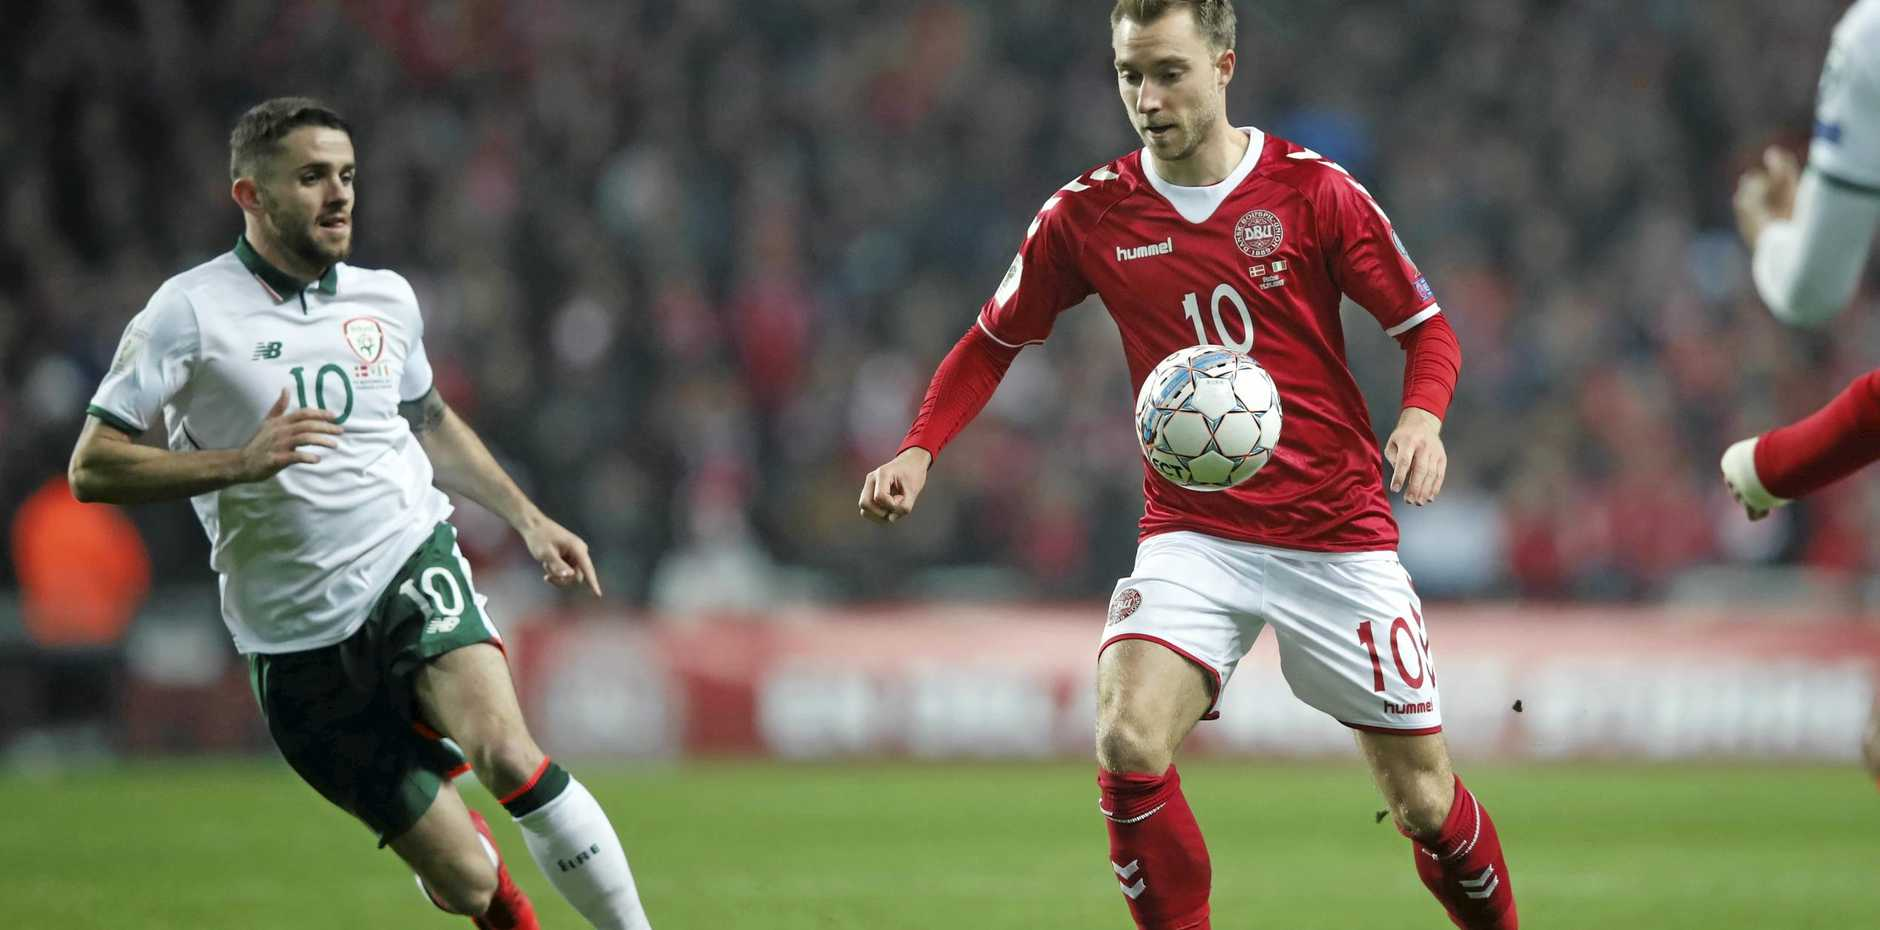 Ireland's Robbie Brady and Denmark's Christian Eriksen, right, vie for the ball during the World Cup qualifying playoff first leg in Copenhagen.